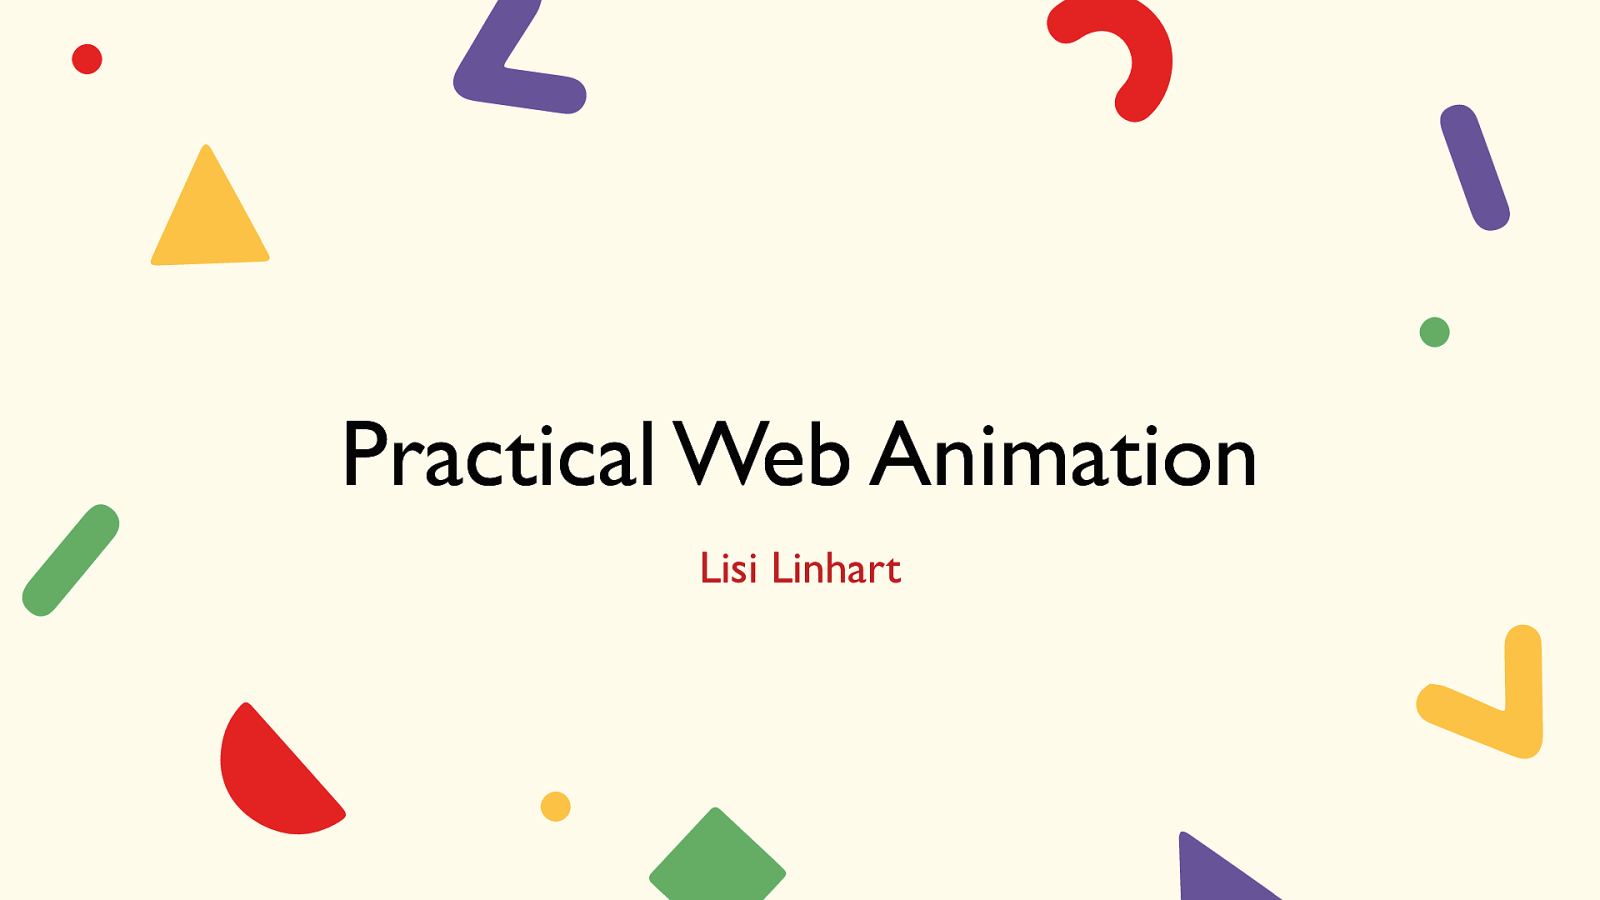 Practical Web Animation